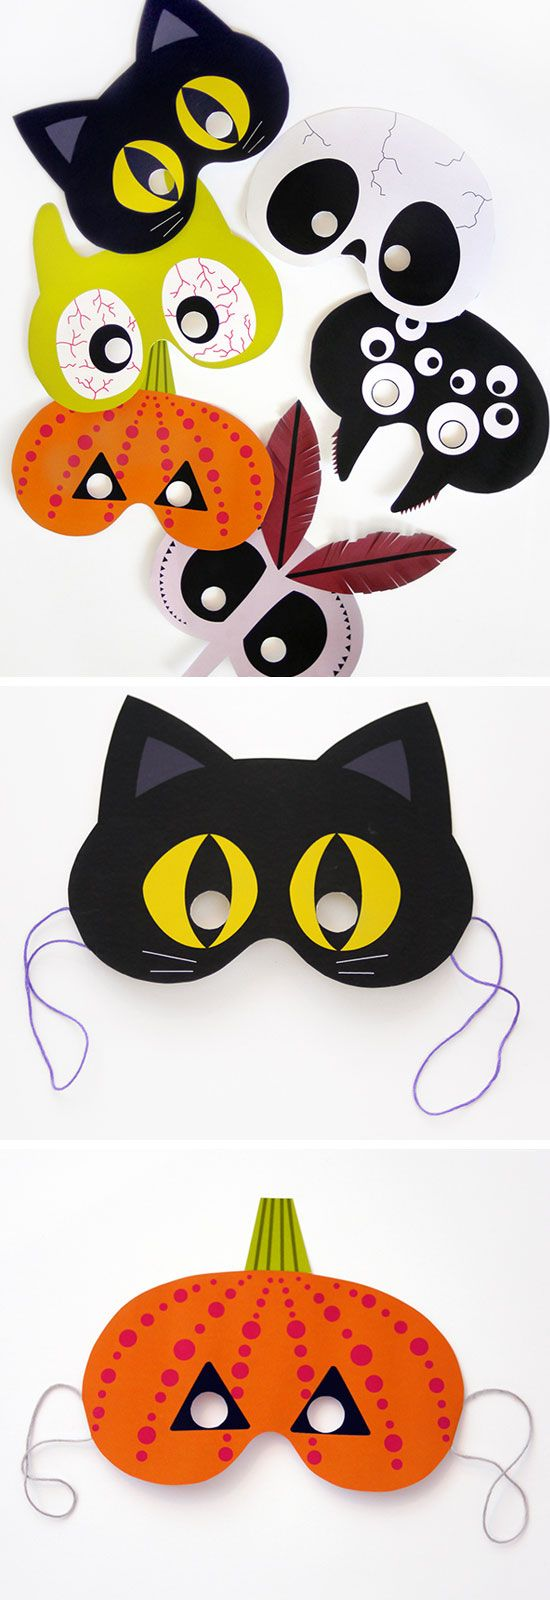 How To Make A Bat-tacular Bat Silhouette Craft for Kids ...